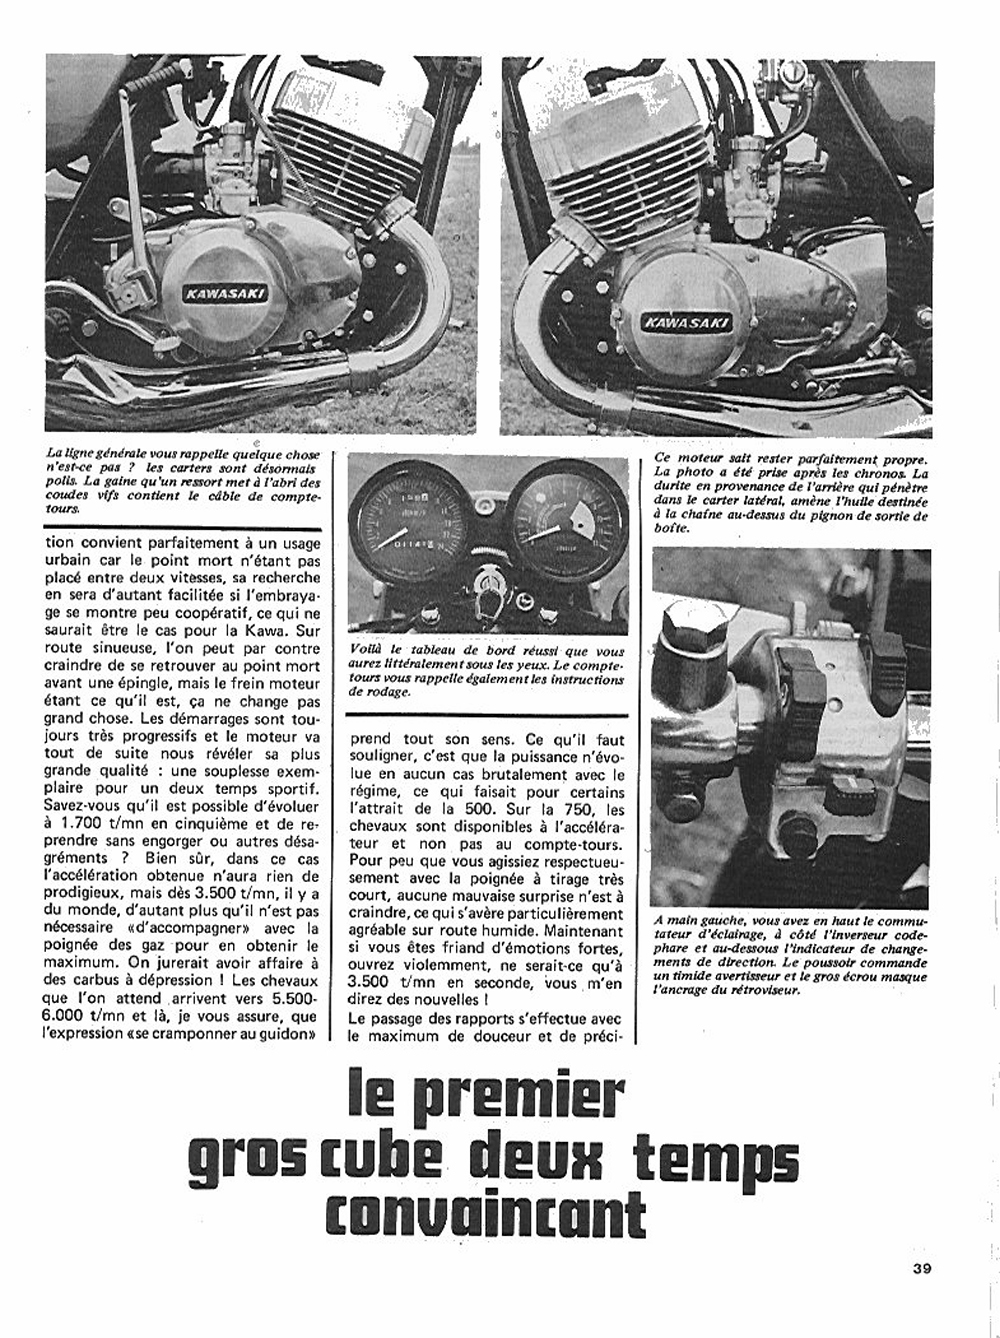 1972 Kawasaki H2 750 road test france 04.jpg